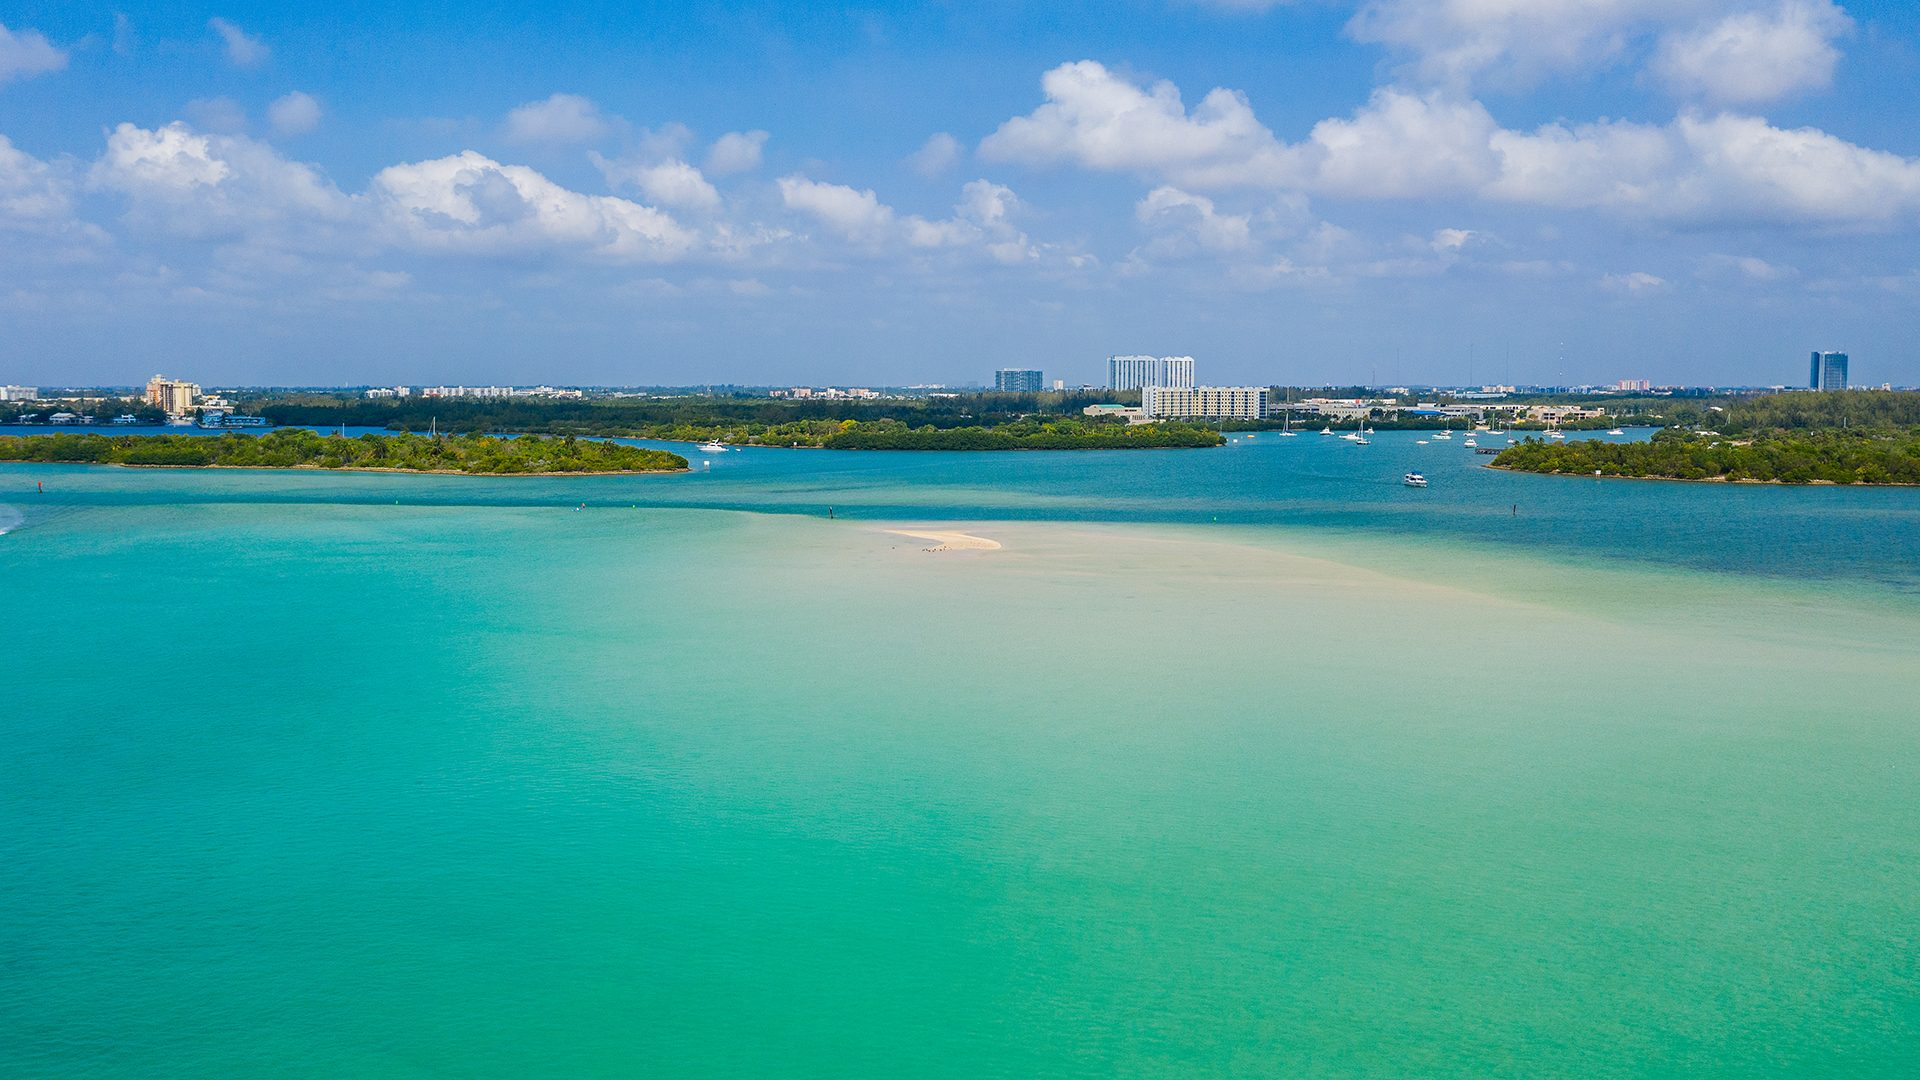 Aerial Residence 902 For Rent at One Bal Harbour, Luxury Oceanfront Condos in Bal Harbour, Miami, Florida 33154.